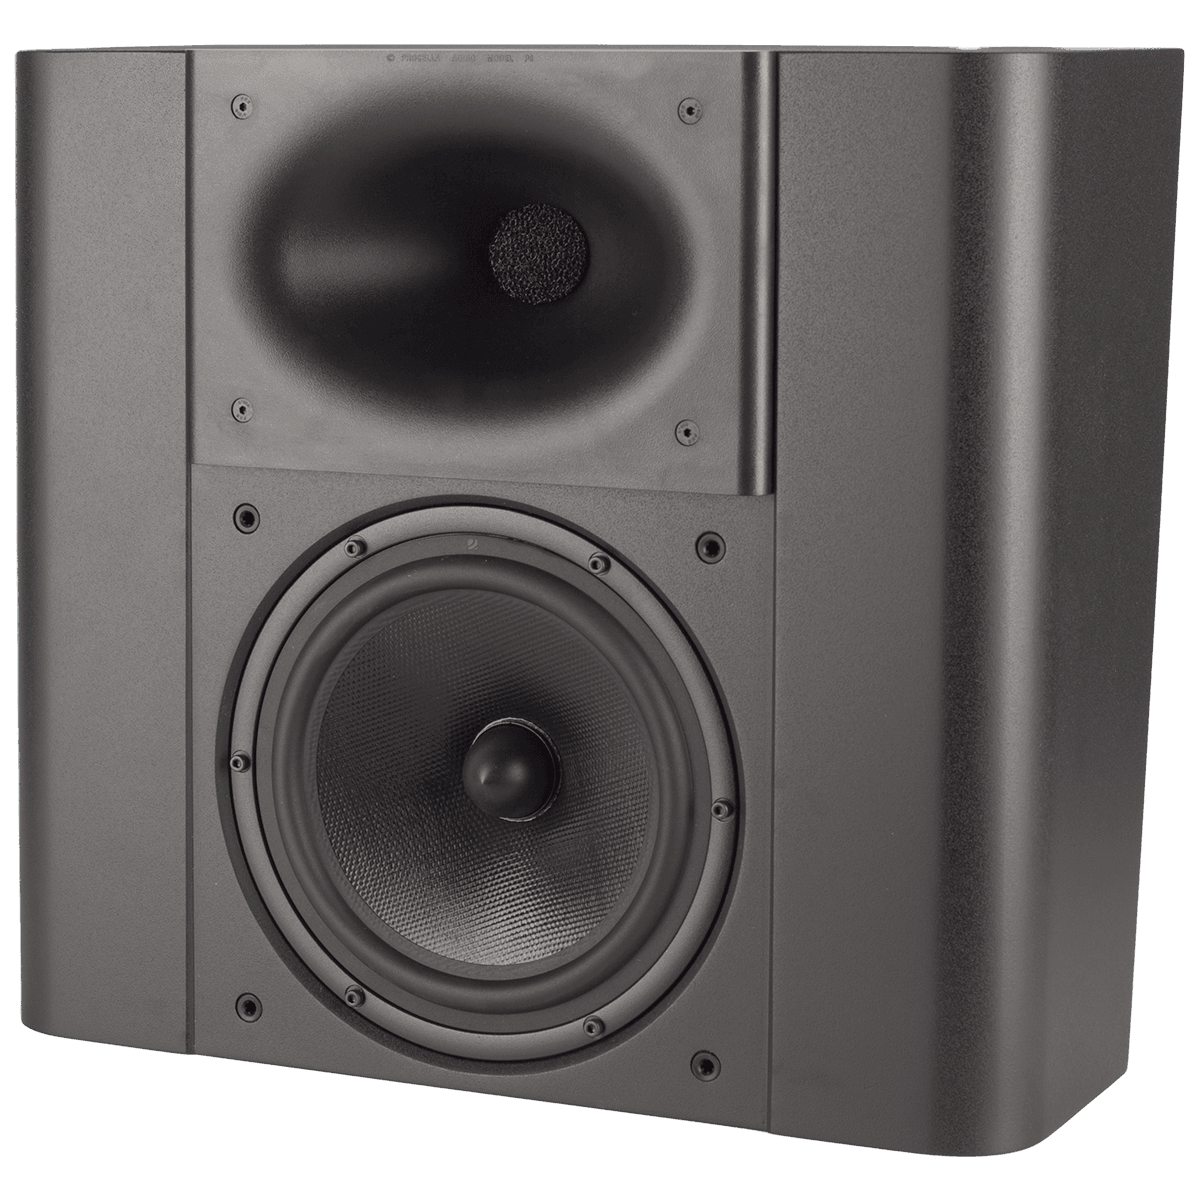 Procella P8 side without cover 1200×1200